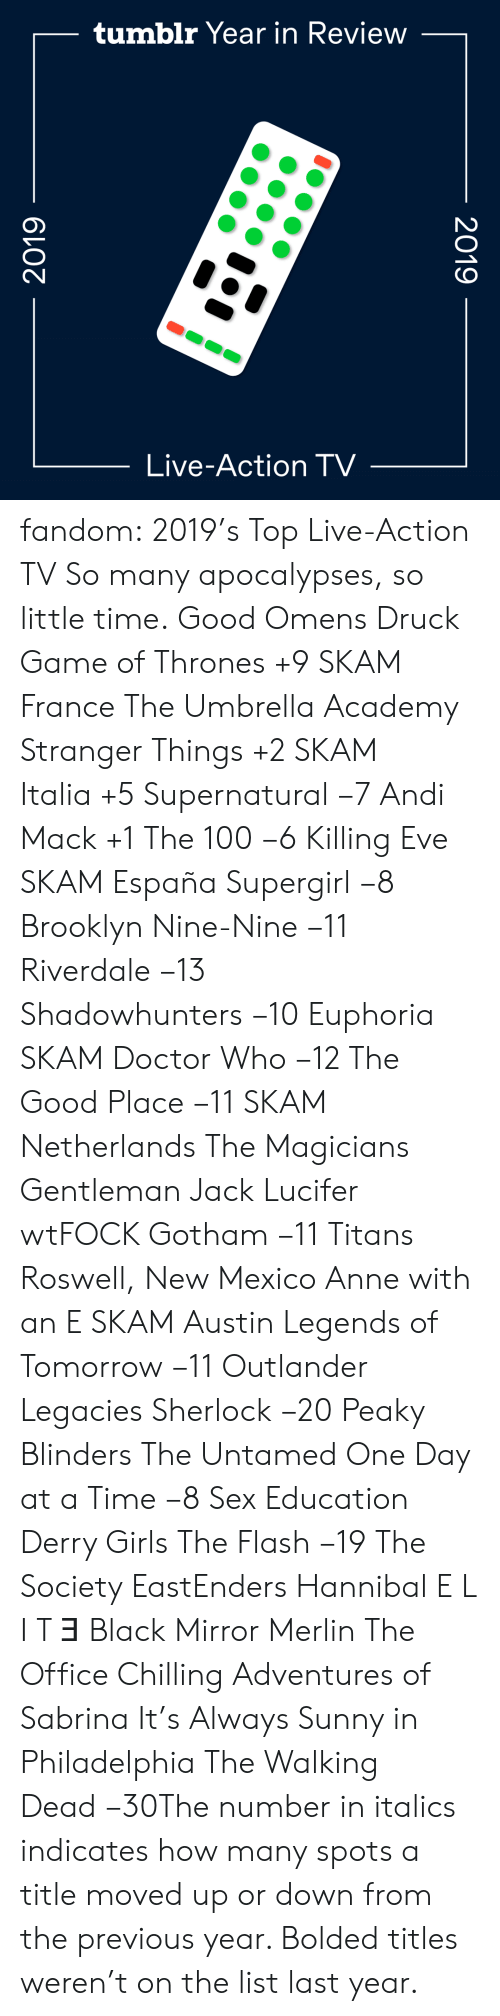 Nine Nine: tumblr Year in Review  Live-Action TV-  2019  2019 fandom:  2019's Top Live-Action TV  So many apocalypses, so little time.  Good Omens  Druck  Game of Thrones +9  SKAM France  The Umbrella Academy  Stranger Things +2  SKAM Italia +5  Supernatural −7  Andi Mack +1  The 100 −6  Killing Eve   SKAM España  Supergirl −8  Brooklyn Nine-Nine −11  Riverdale −13  Shadowhunters −10  Euphoria  SKAM  Doctor Who −12  The Good Place −11  SKAM Netherlands  The Magicians  Gentleman Jack  Lucifer  wtFOCK  Gotham −11  Titans  Roswell, New Mexico  Anne with an E  SKAM Austin  Legends of Tomorrow −11  Outlander  Legacies  Sherlock −20  Peaky Blinders  The Untamed  One Day at a Time −8  Sex Education  Derry Girls  The Flash −19  The Society  EastEnders  Hannibal  E L I T Ǝ  Black Mirror  Merlin  The Office  Chilling Adventures of Sabrina  It's Always Sunny in Philadelphia The Walking Dead −30The number in italics indicates how many spots a title moved up or down from the previous year. Bolded titles weren't on the list last year.